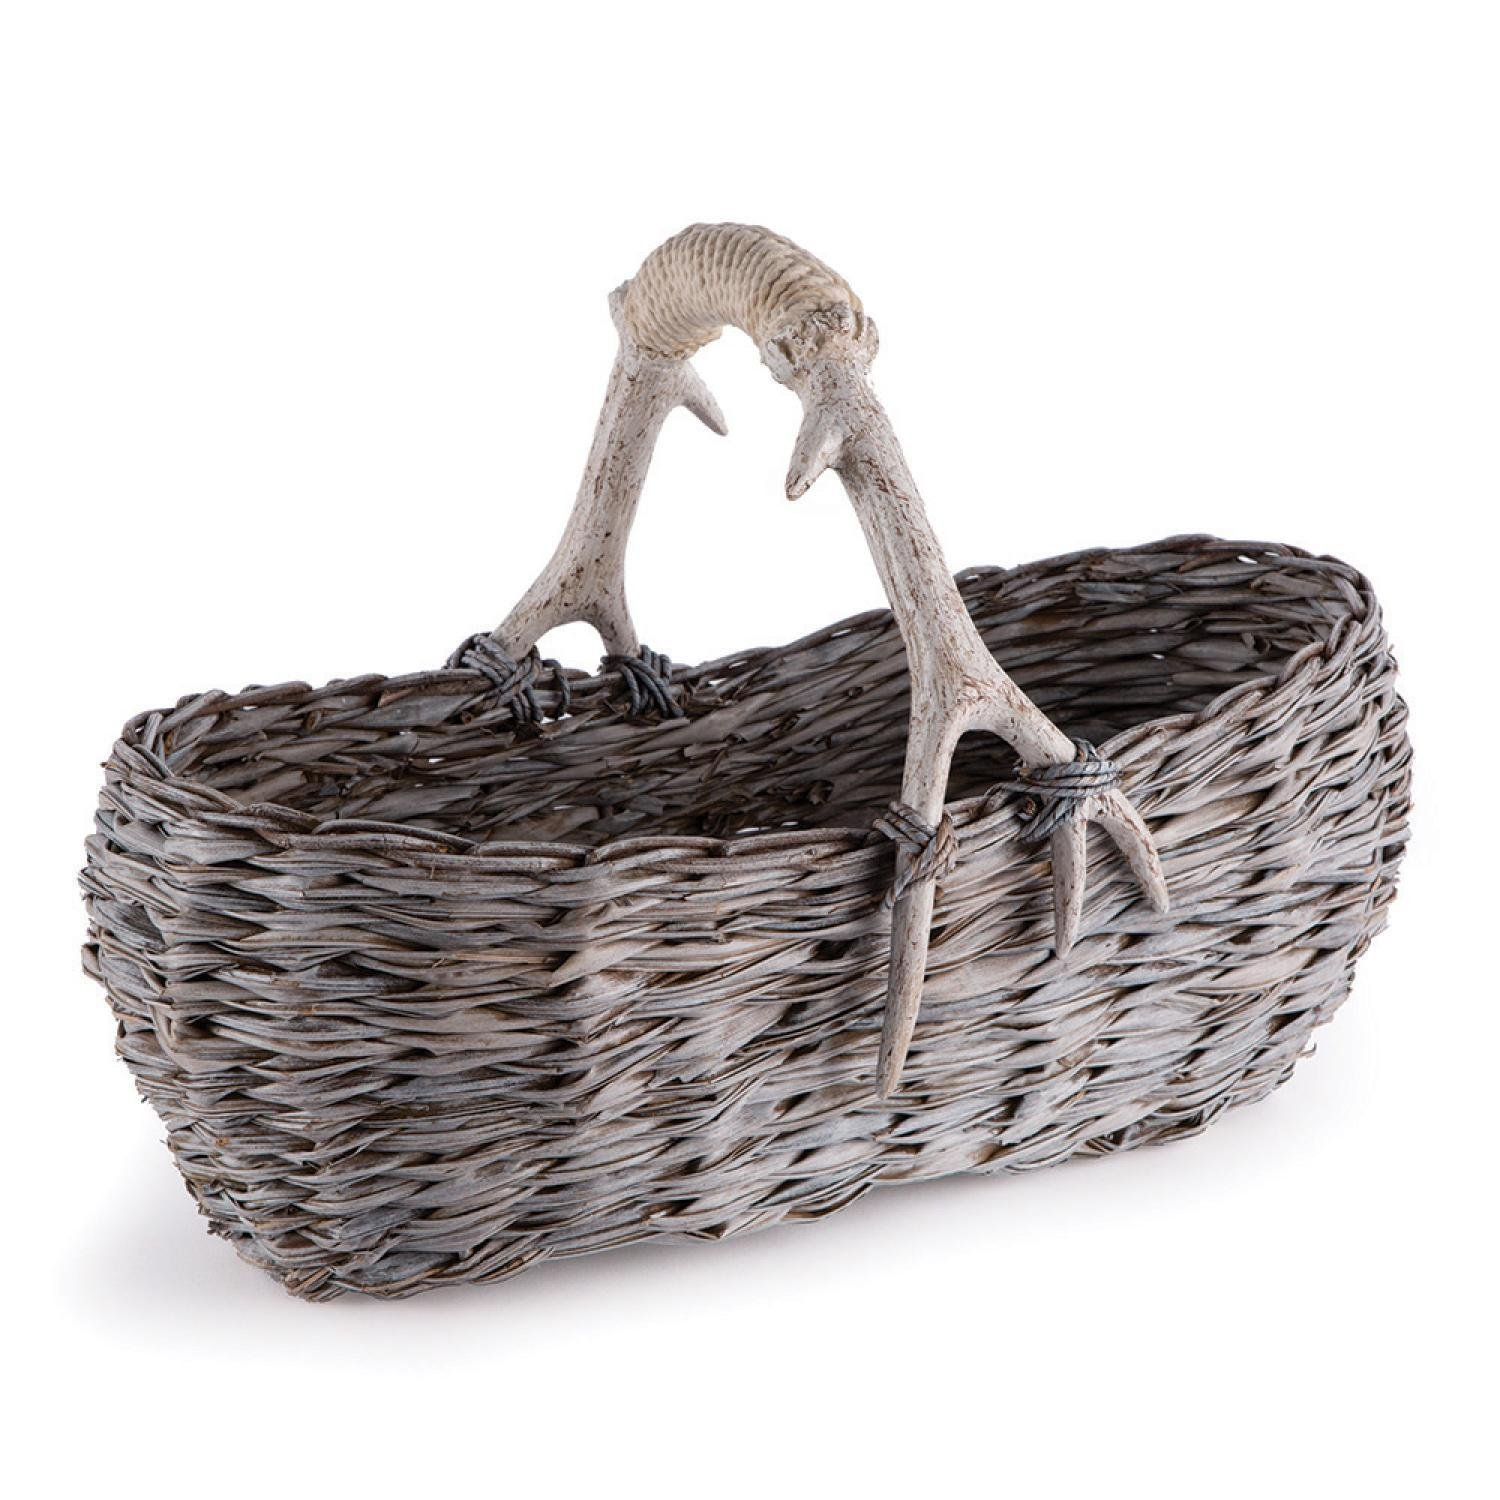 CC Home Furnishings Weathered Gray and Beige Faux Antler and Rope Wrapped Handle Hand Woven Gathering Basket